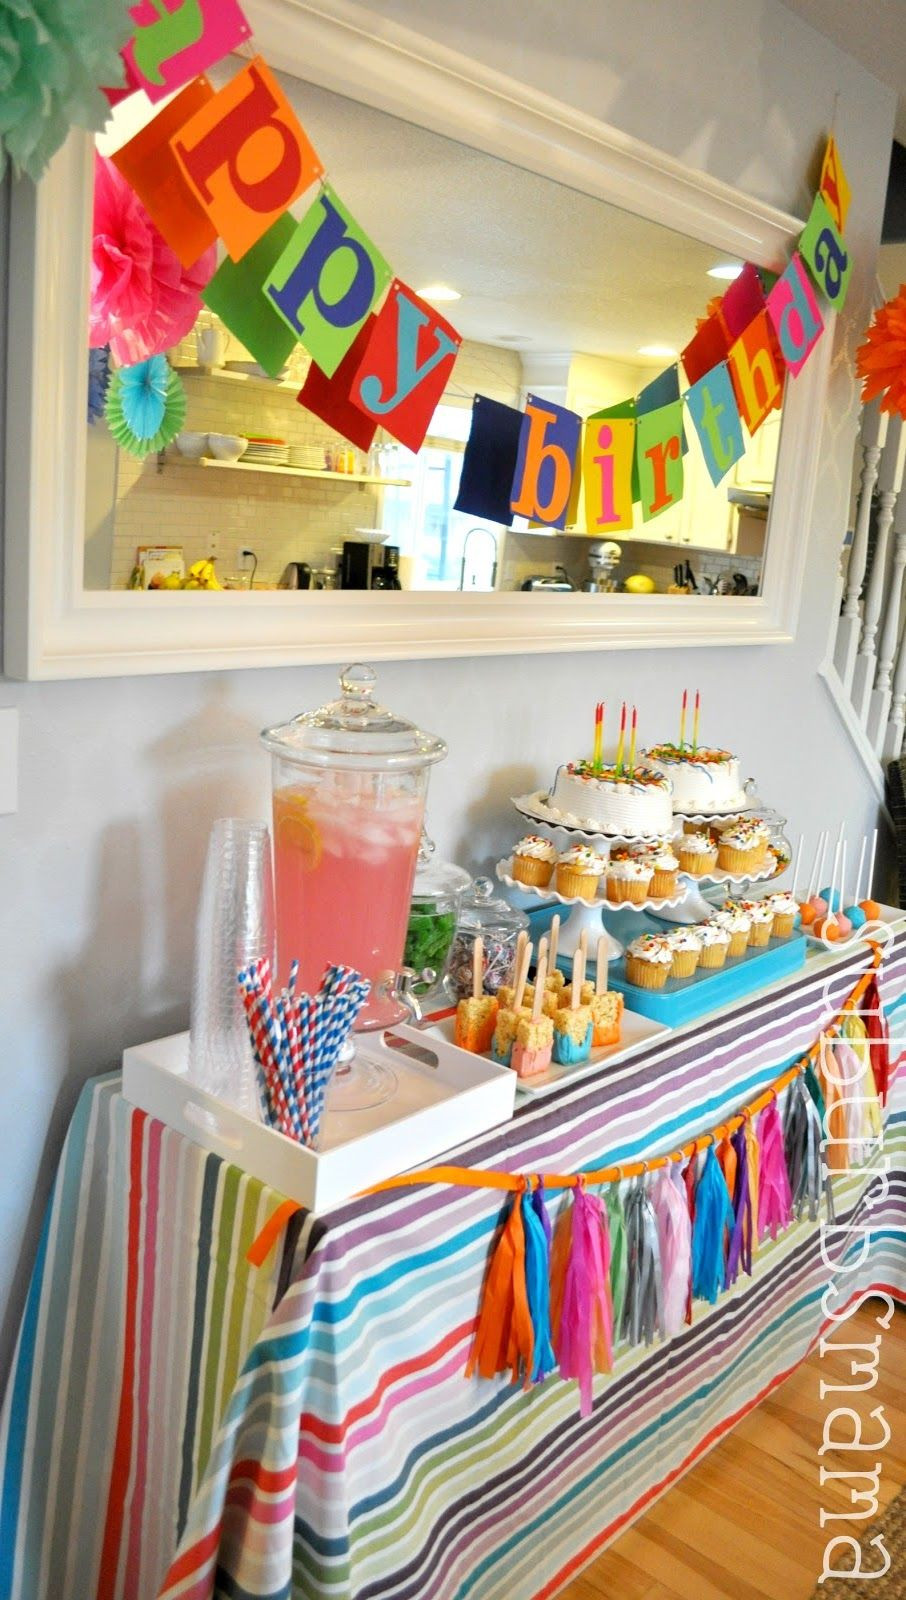 Best ideas about Kids Birthday Party Decorations . Save or Pin Suburbs Mama darling kids birthday party ideas Now.